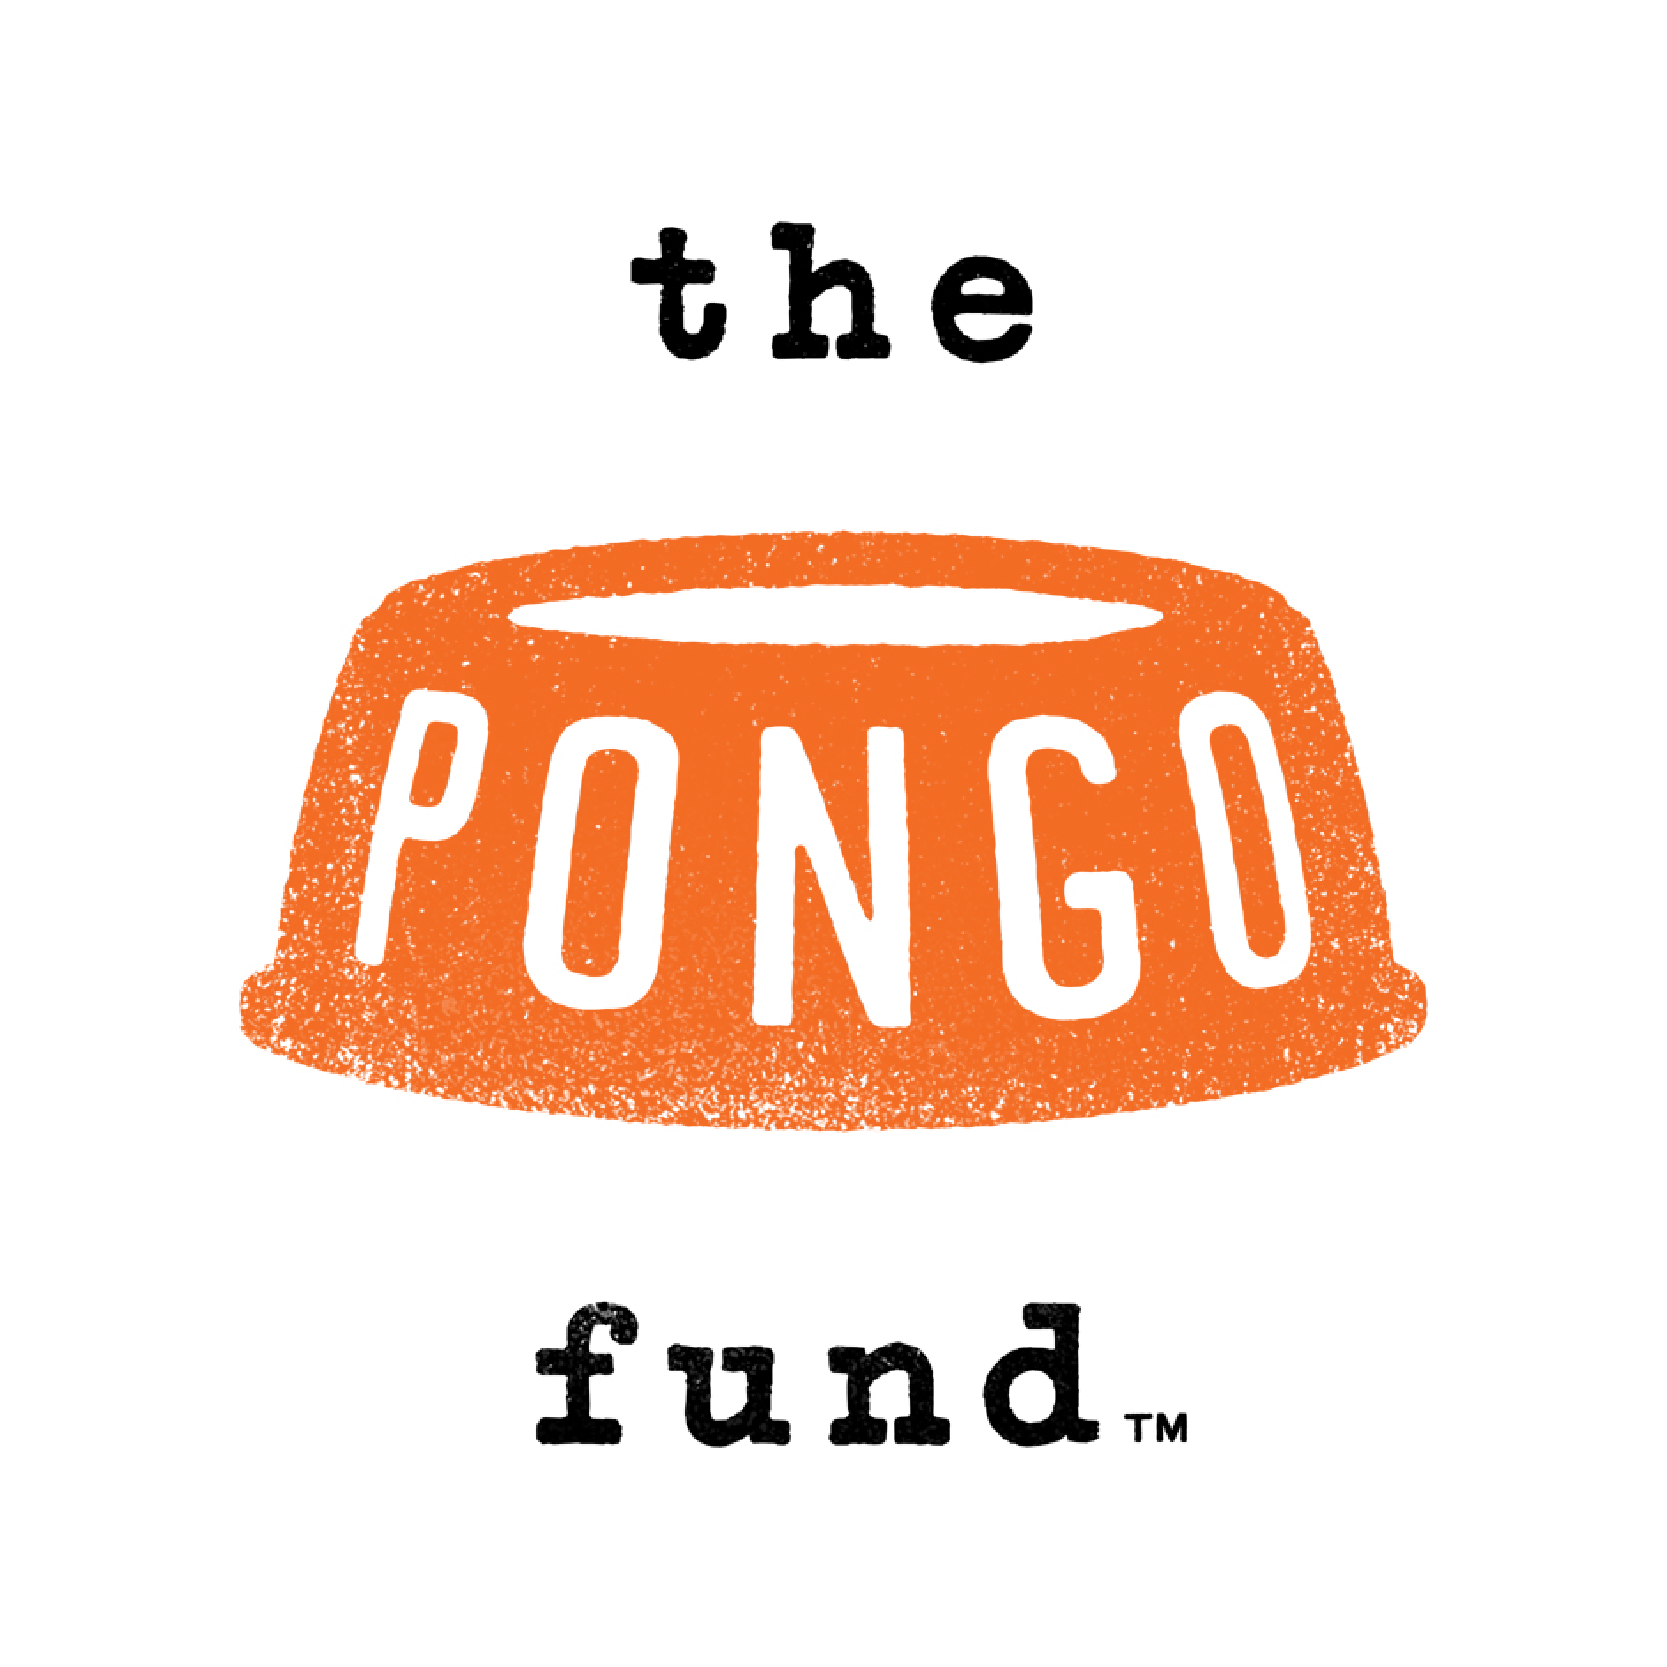 THE PONGO FUND   The Pongo Fund is Oregon's only full-time charity focused on fighting animal hunger. Because hungry people have hungry pets. They work tirelessly to reduce shelter populations and keep families together by providing emergency pet food assistance to anyone in honest need.